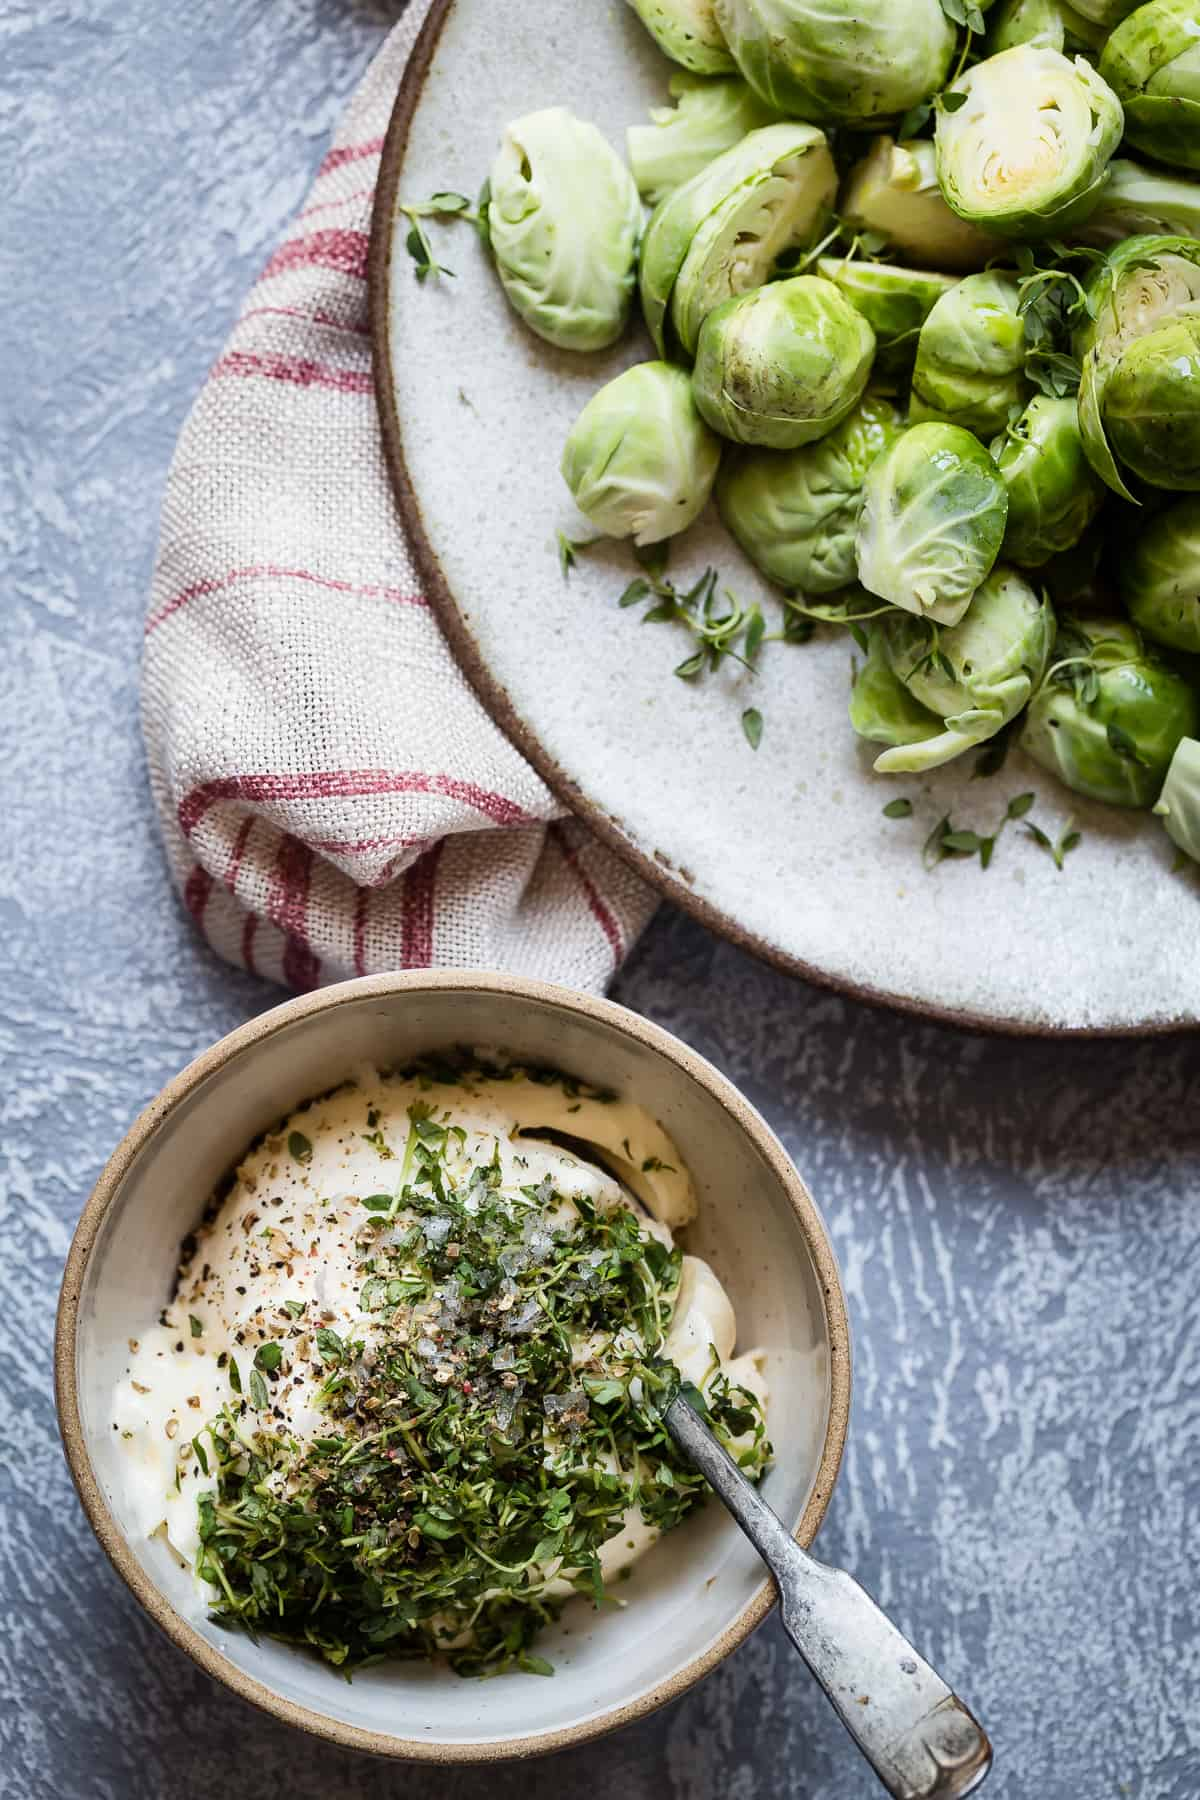 Fresh thyme, salt and black pepper is the perfect seasoning for this buttery spread and roasted brussels sprouts